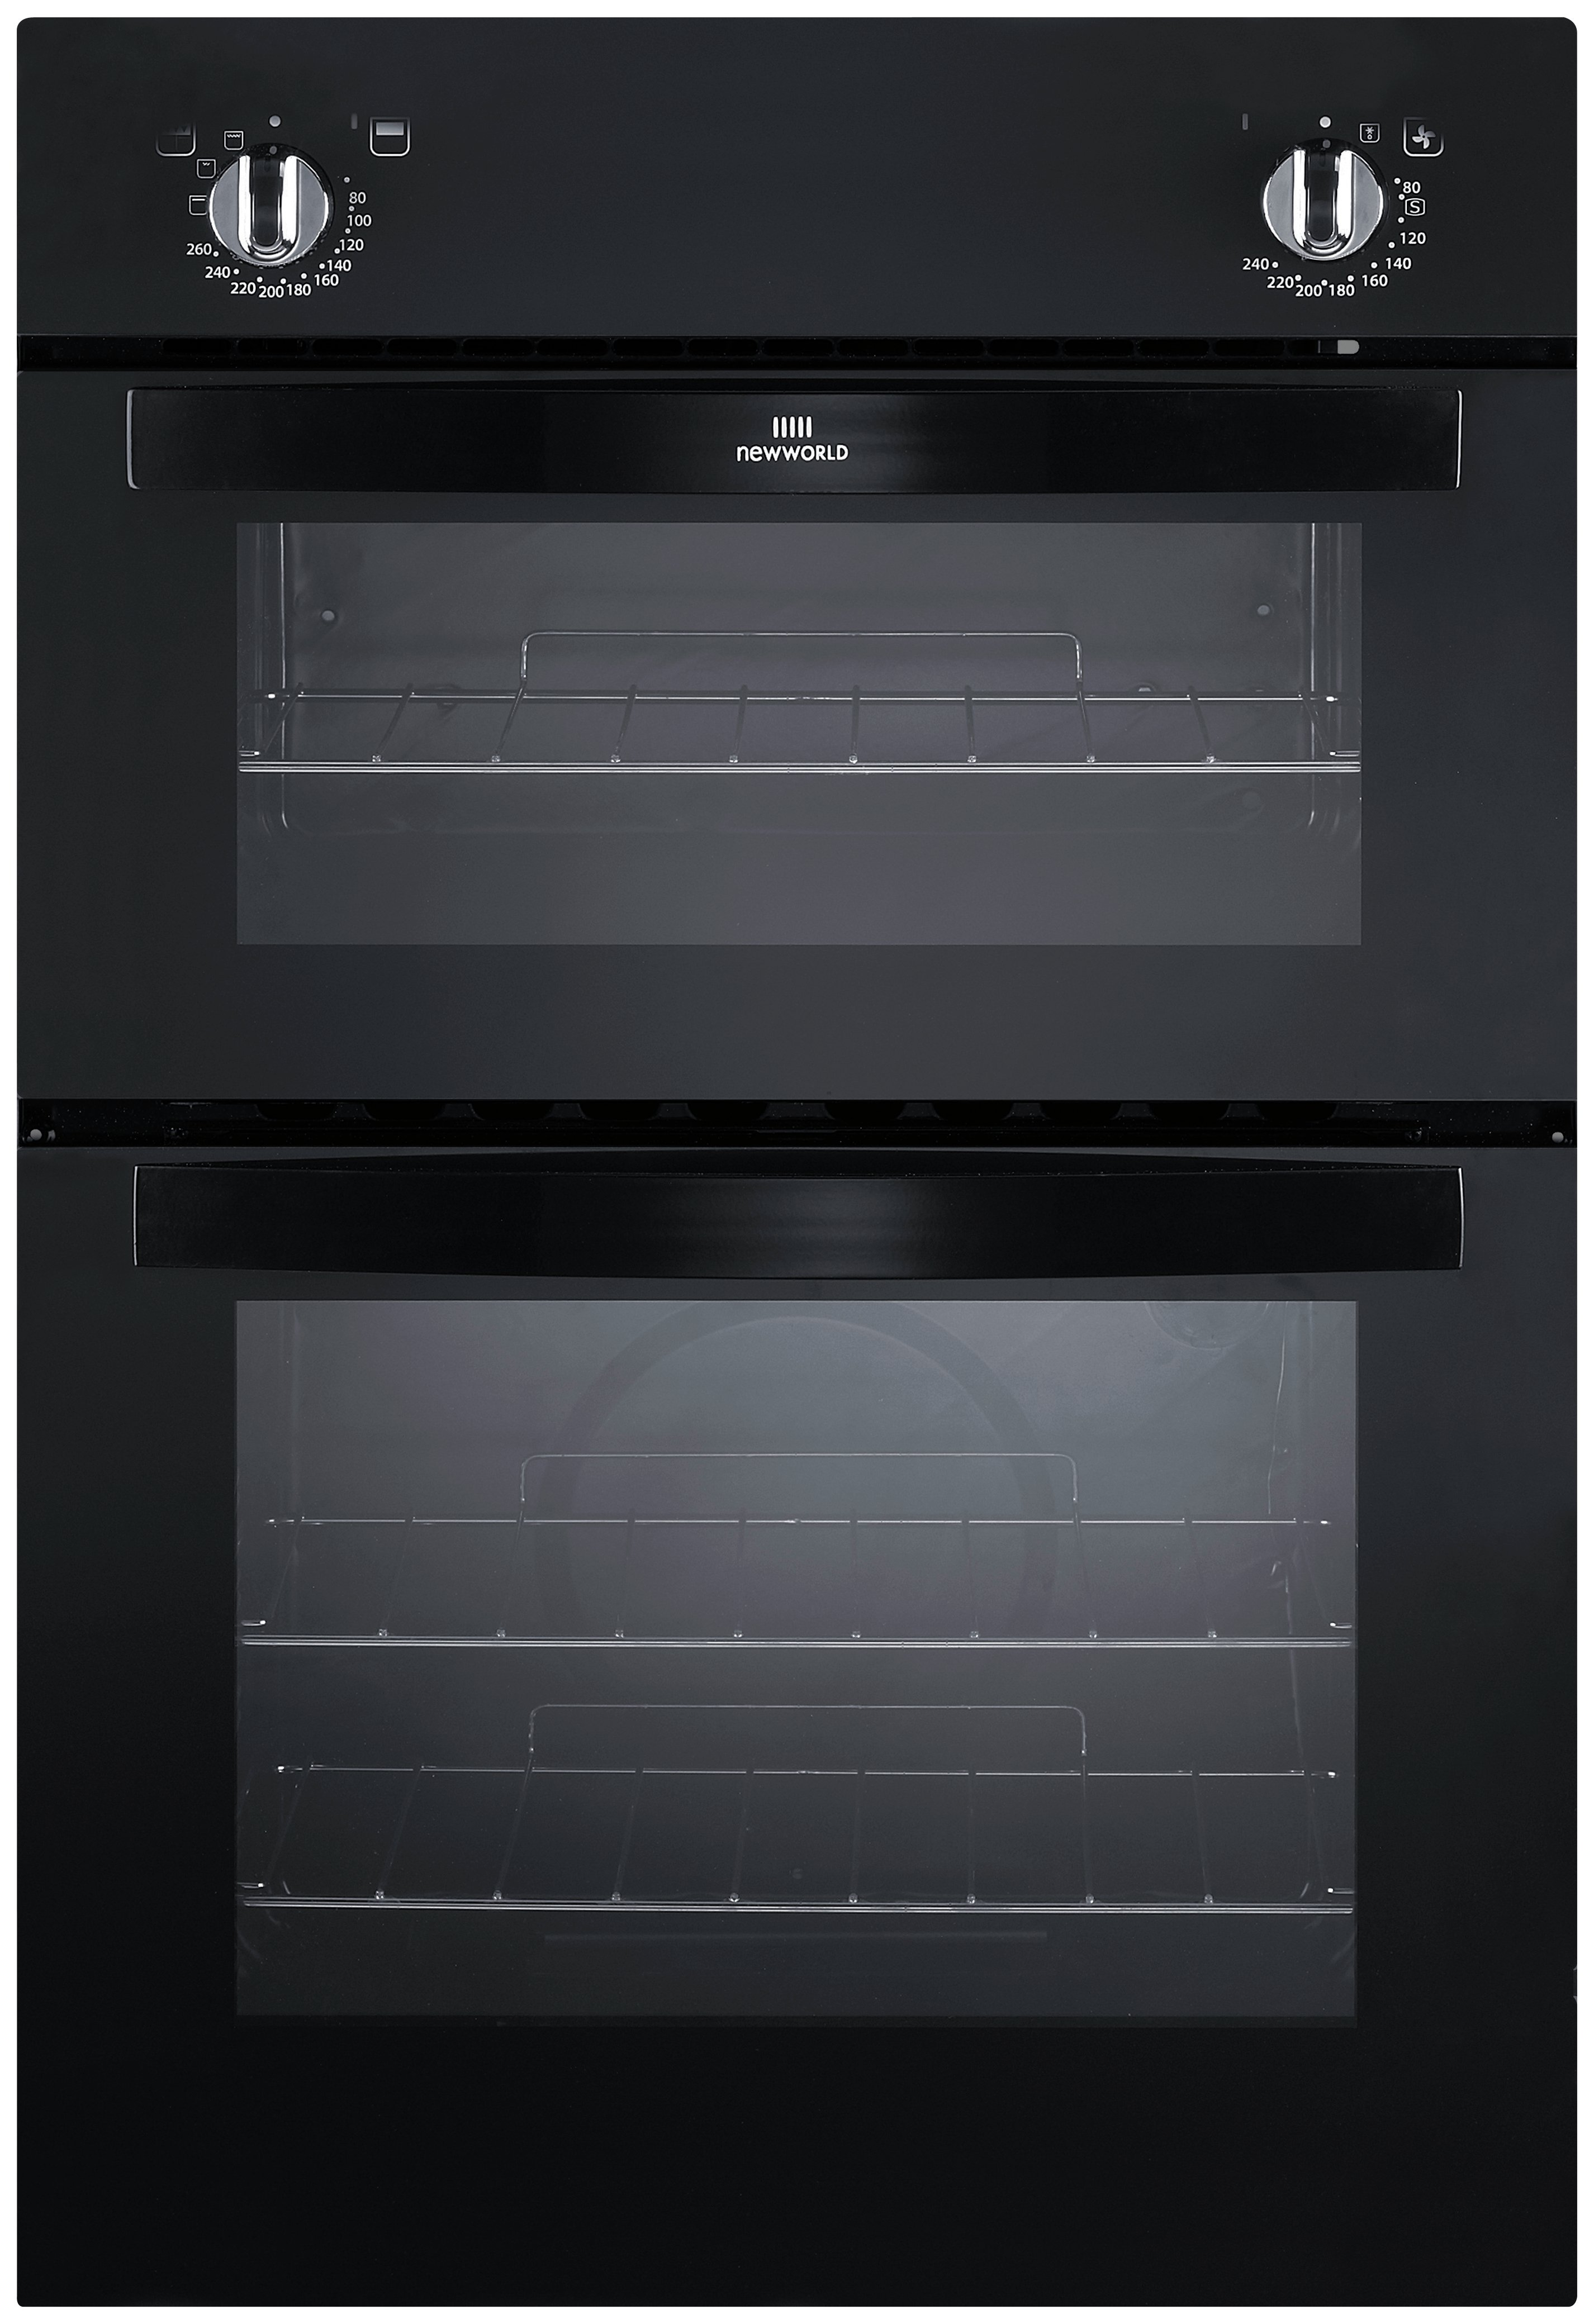 New World NW901DO Built-in Double Oven - Black.